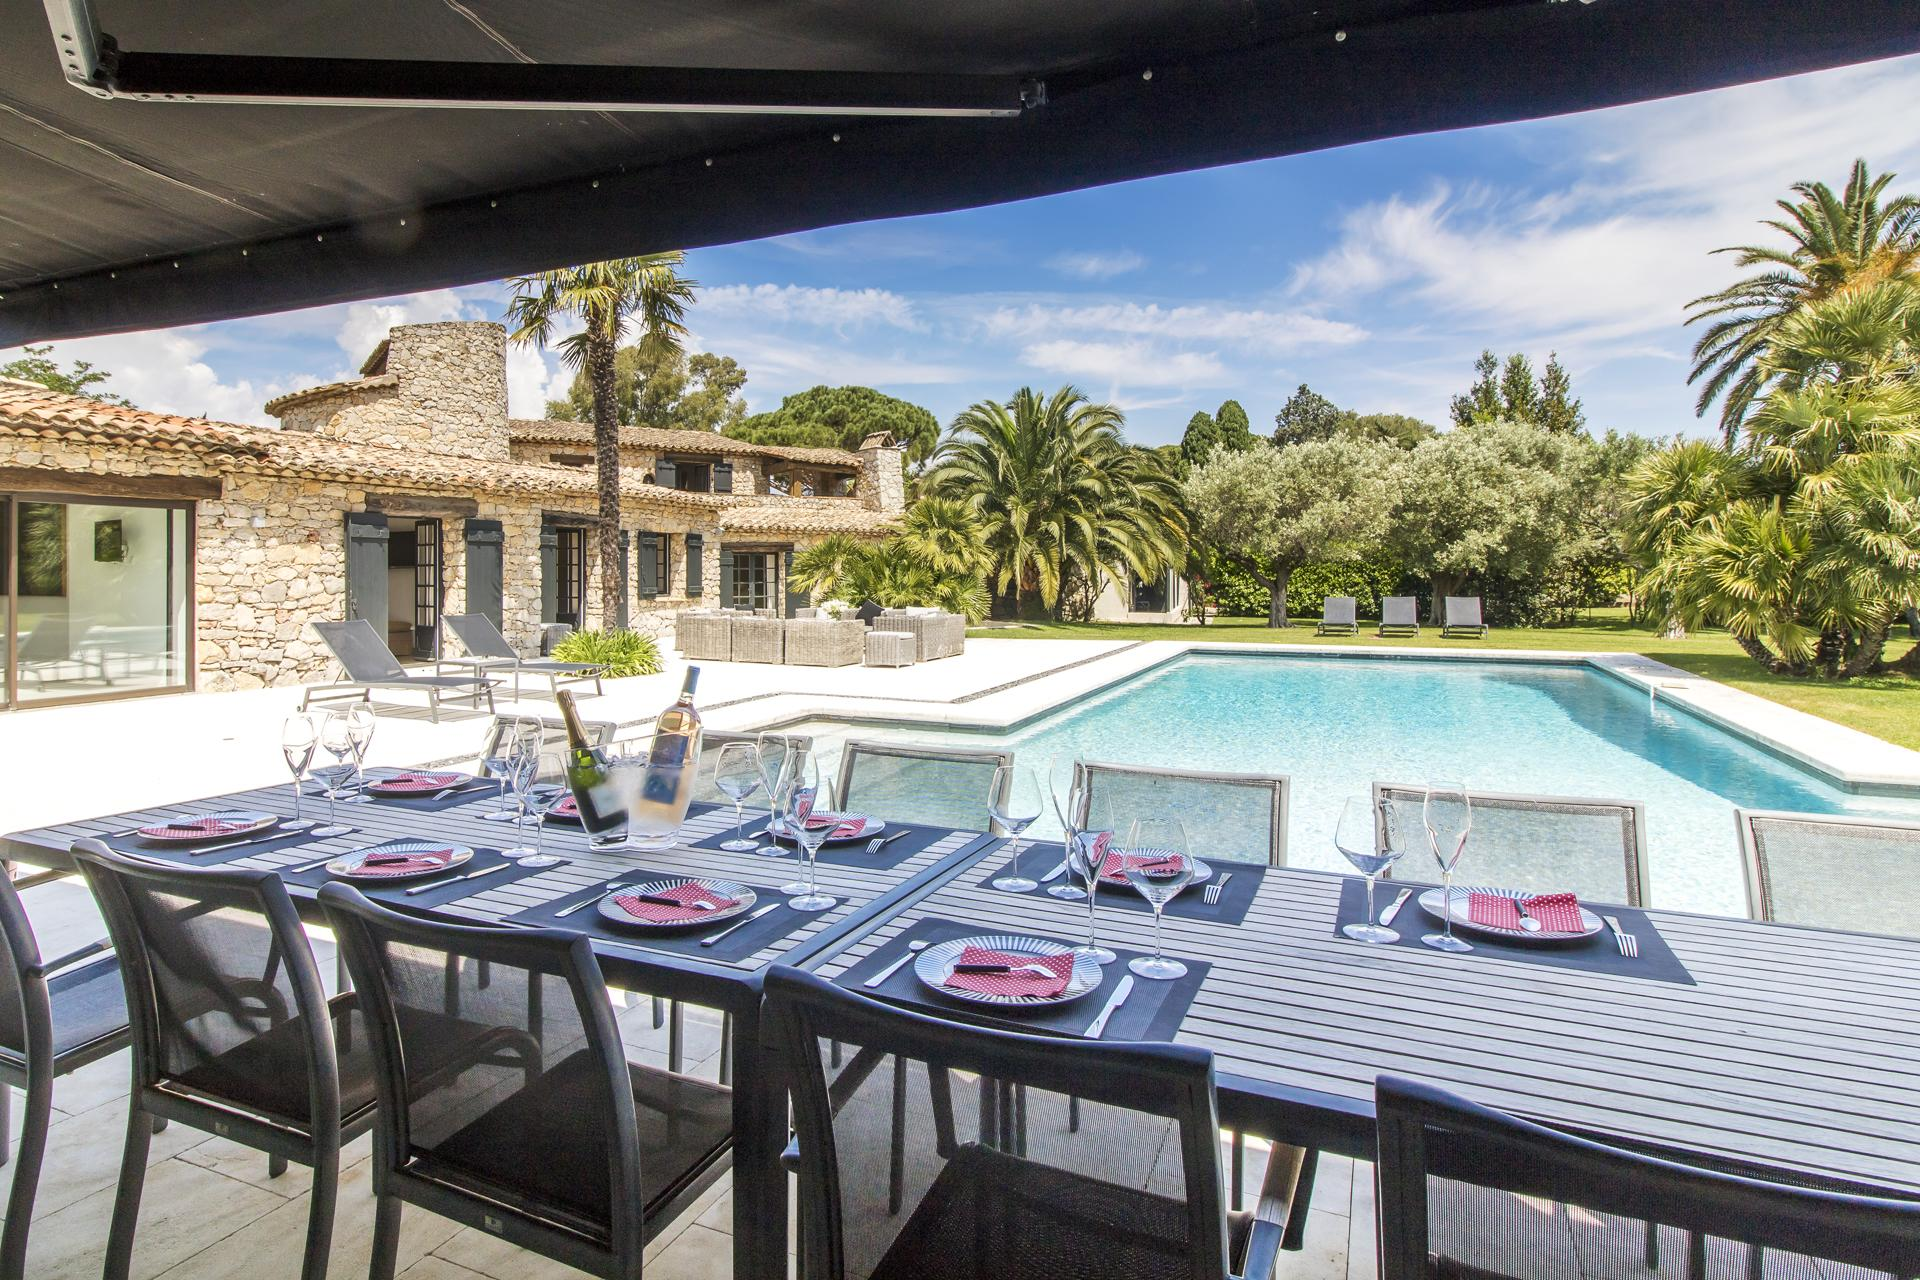 Outdoor dining table next to pool, Belle de Gassin, St Tropez Var, Gassin.